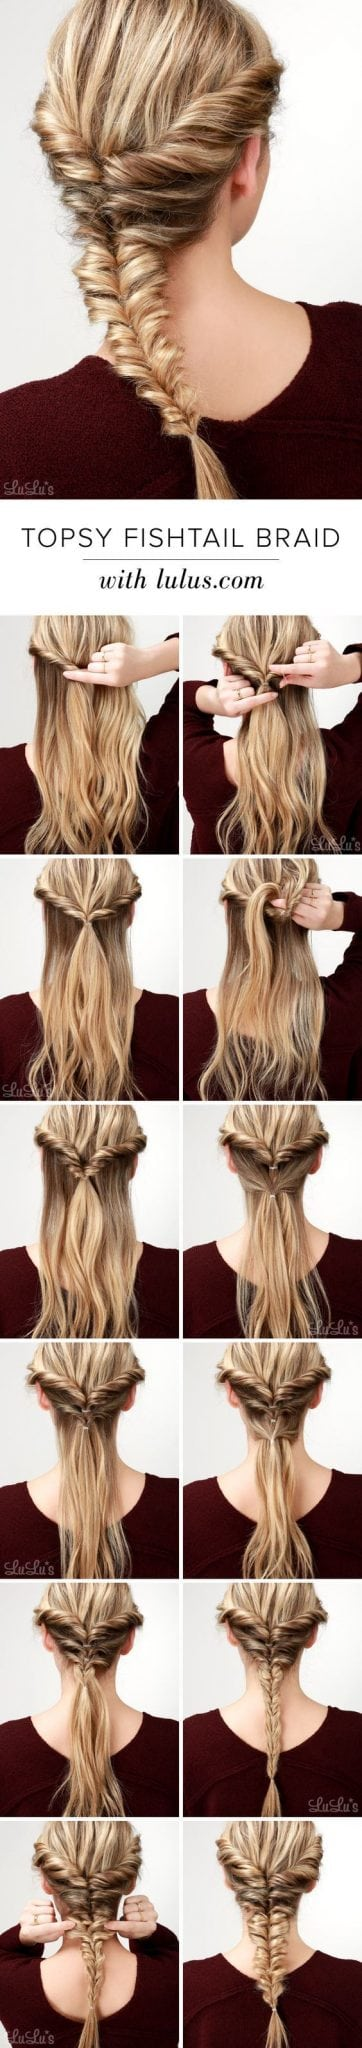 30 Best Braided Hairstyles That Turn Heads – Page 2 of 5 – Trend To Wear Source by trend2wear   …